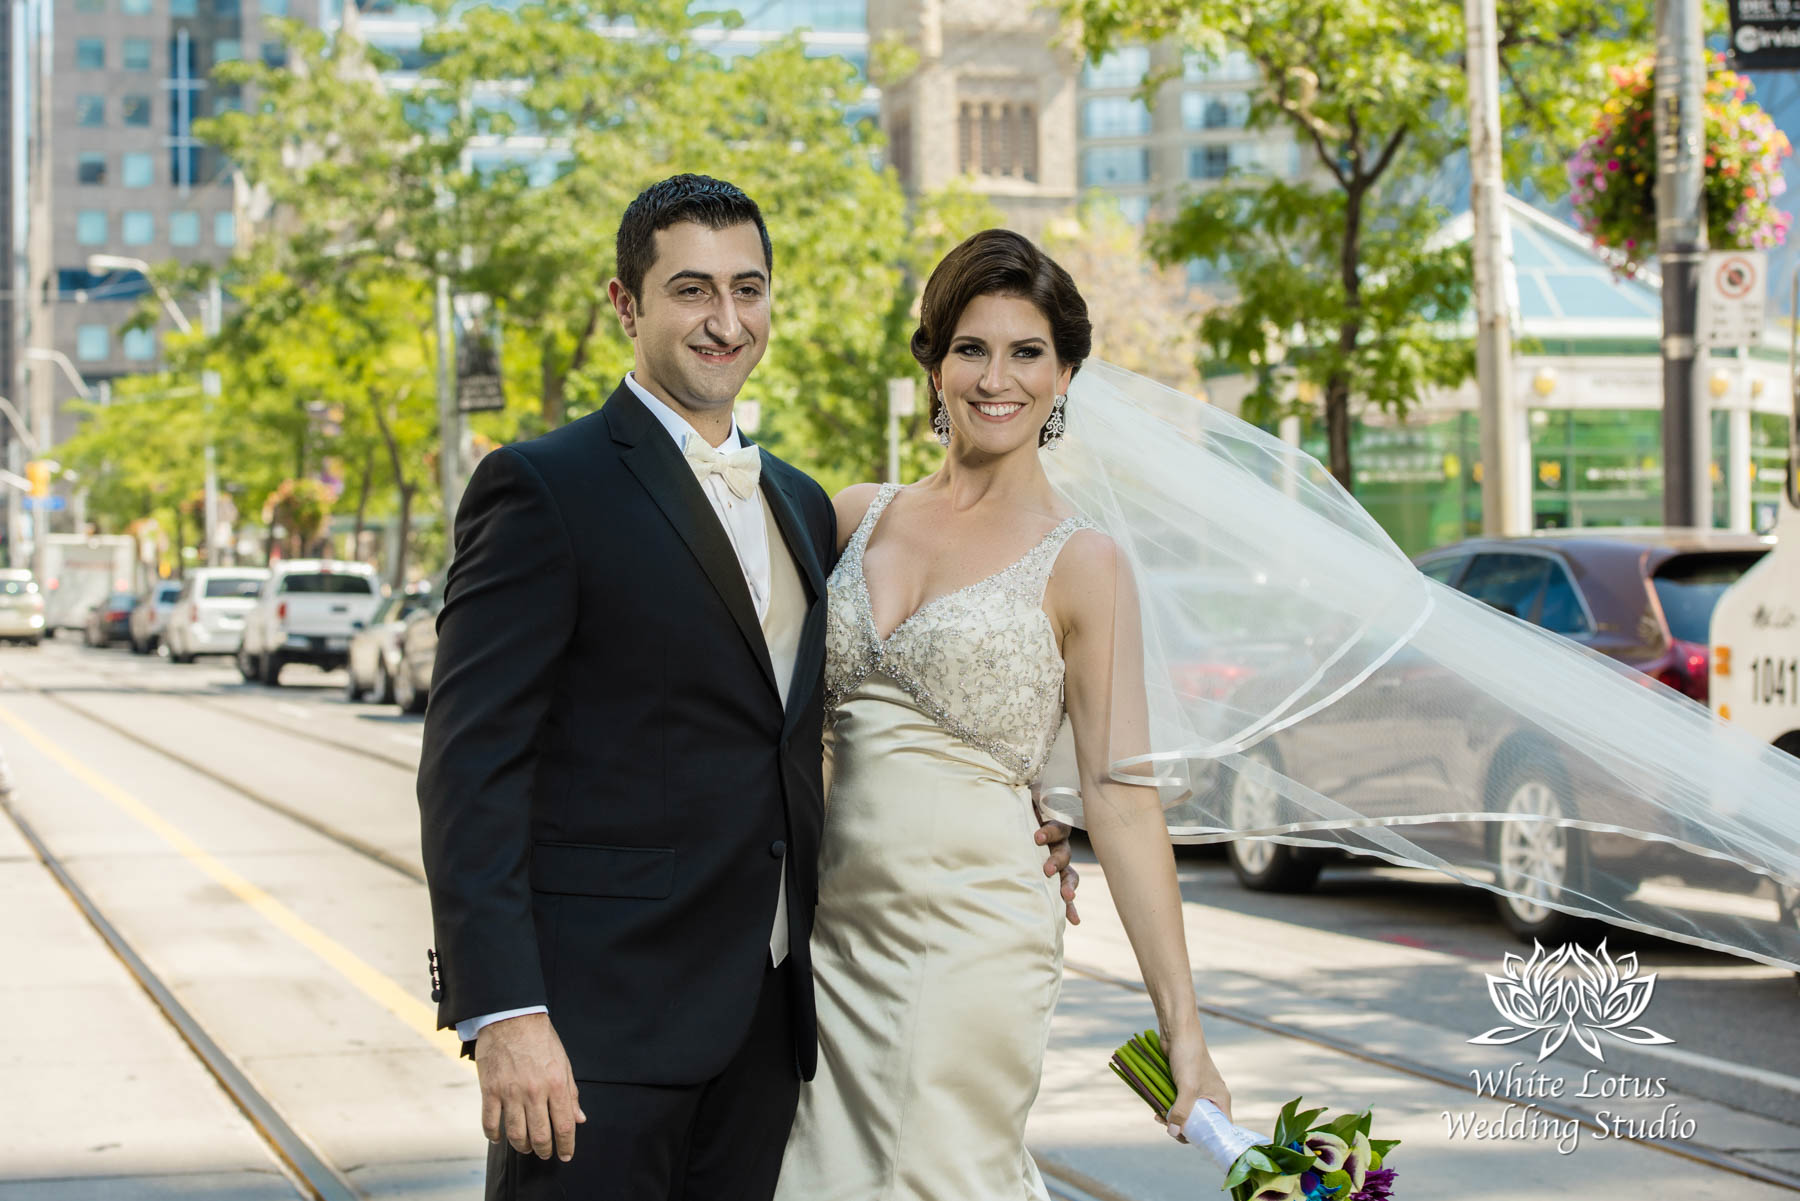 080 - Wedding - Toronto - Downtown wedding photo-walk - PW